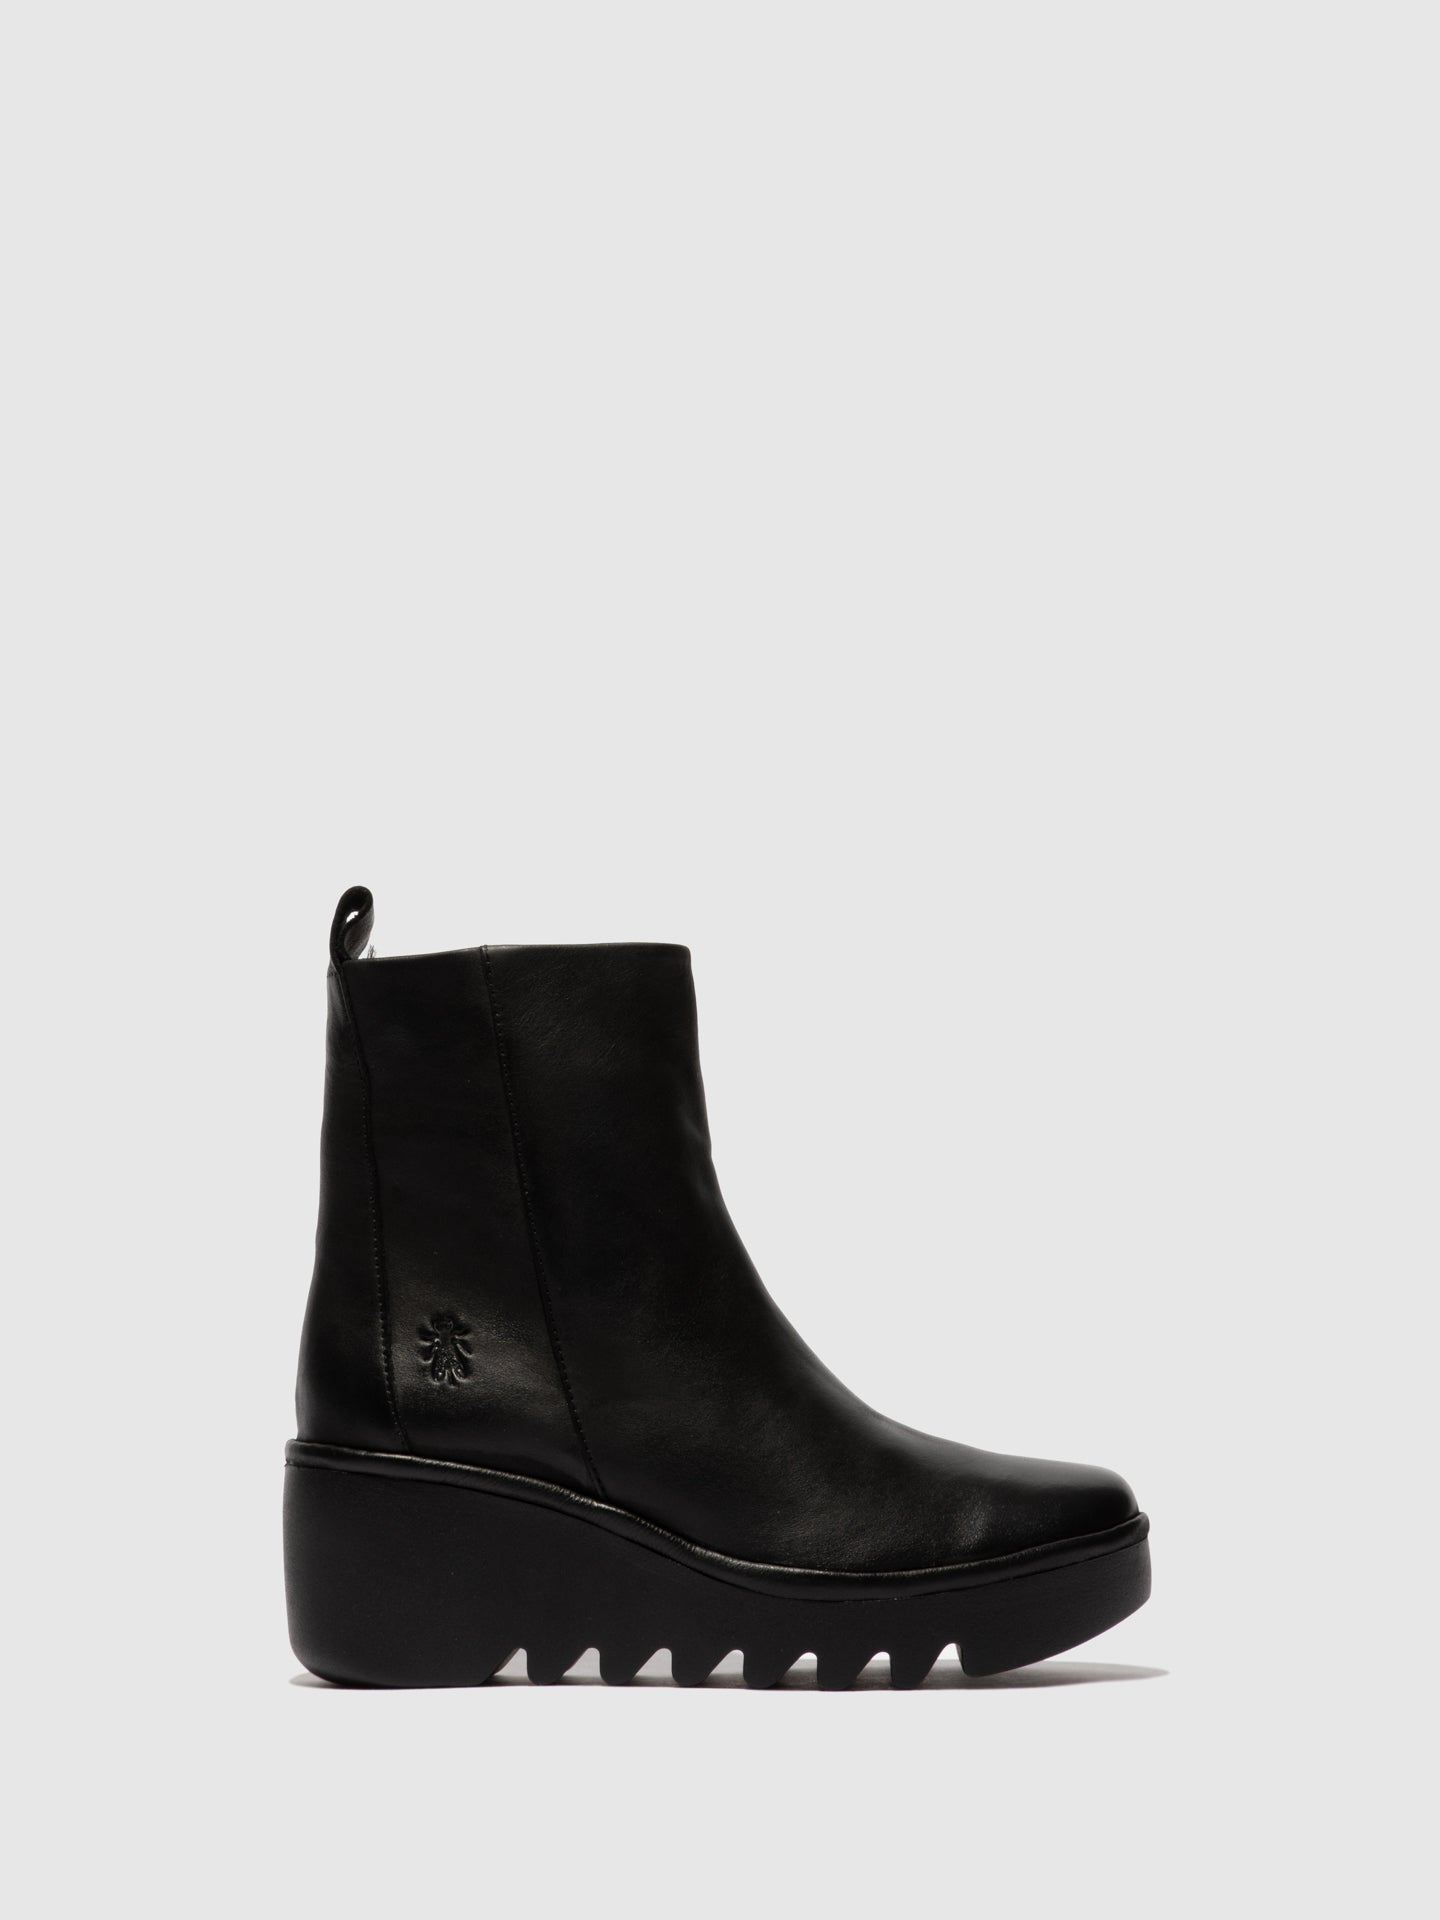 Fly London Zip Up Ankle Boots BALE250FLY VERONA BLACK